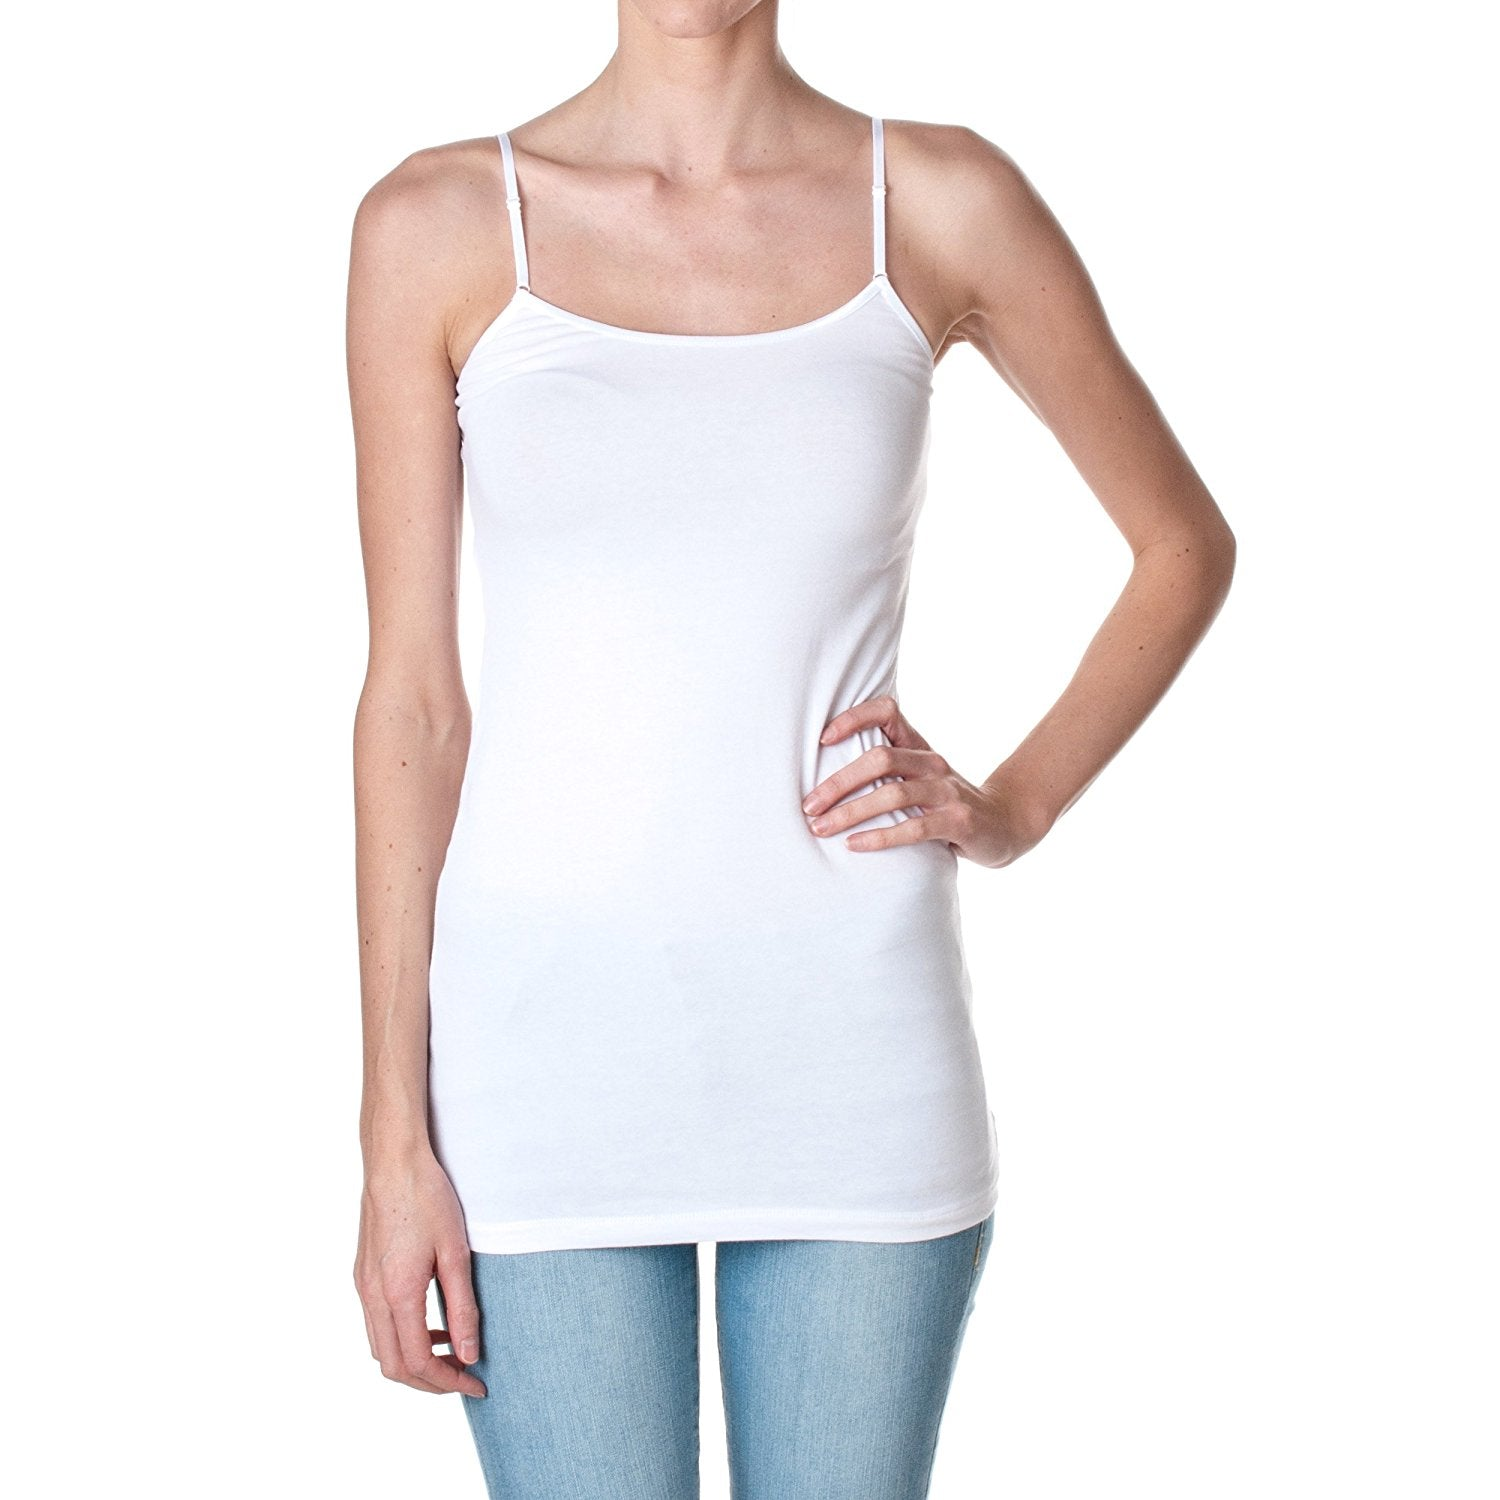 Active USA Plain Long Spaghetti Strap Tank Top Camis Basic Camisole Cotton